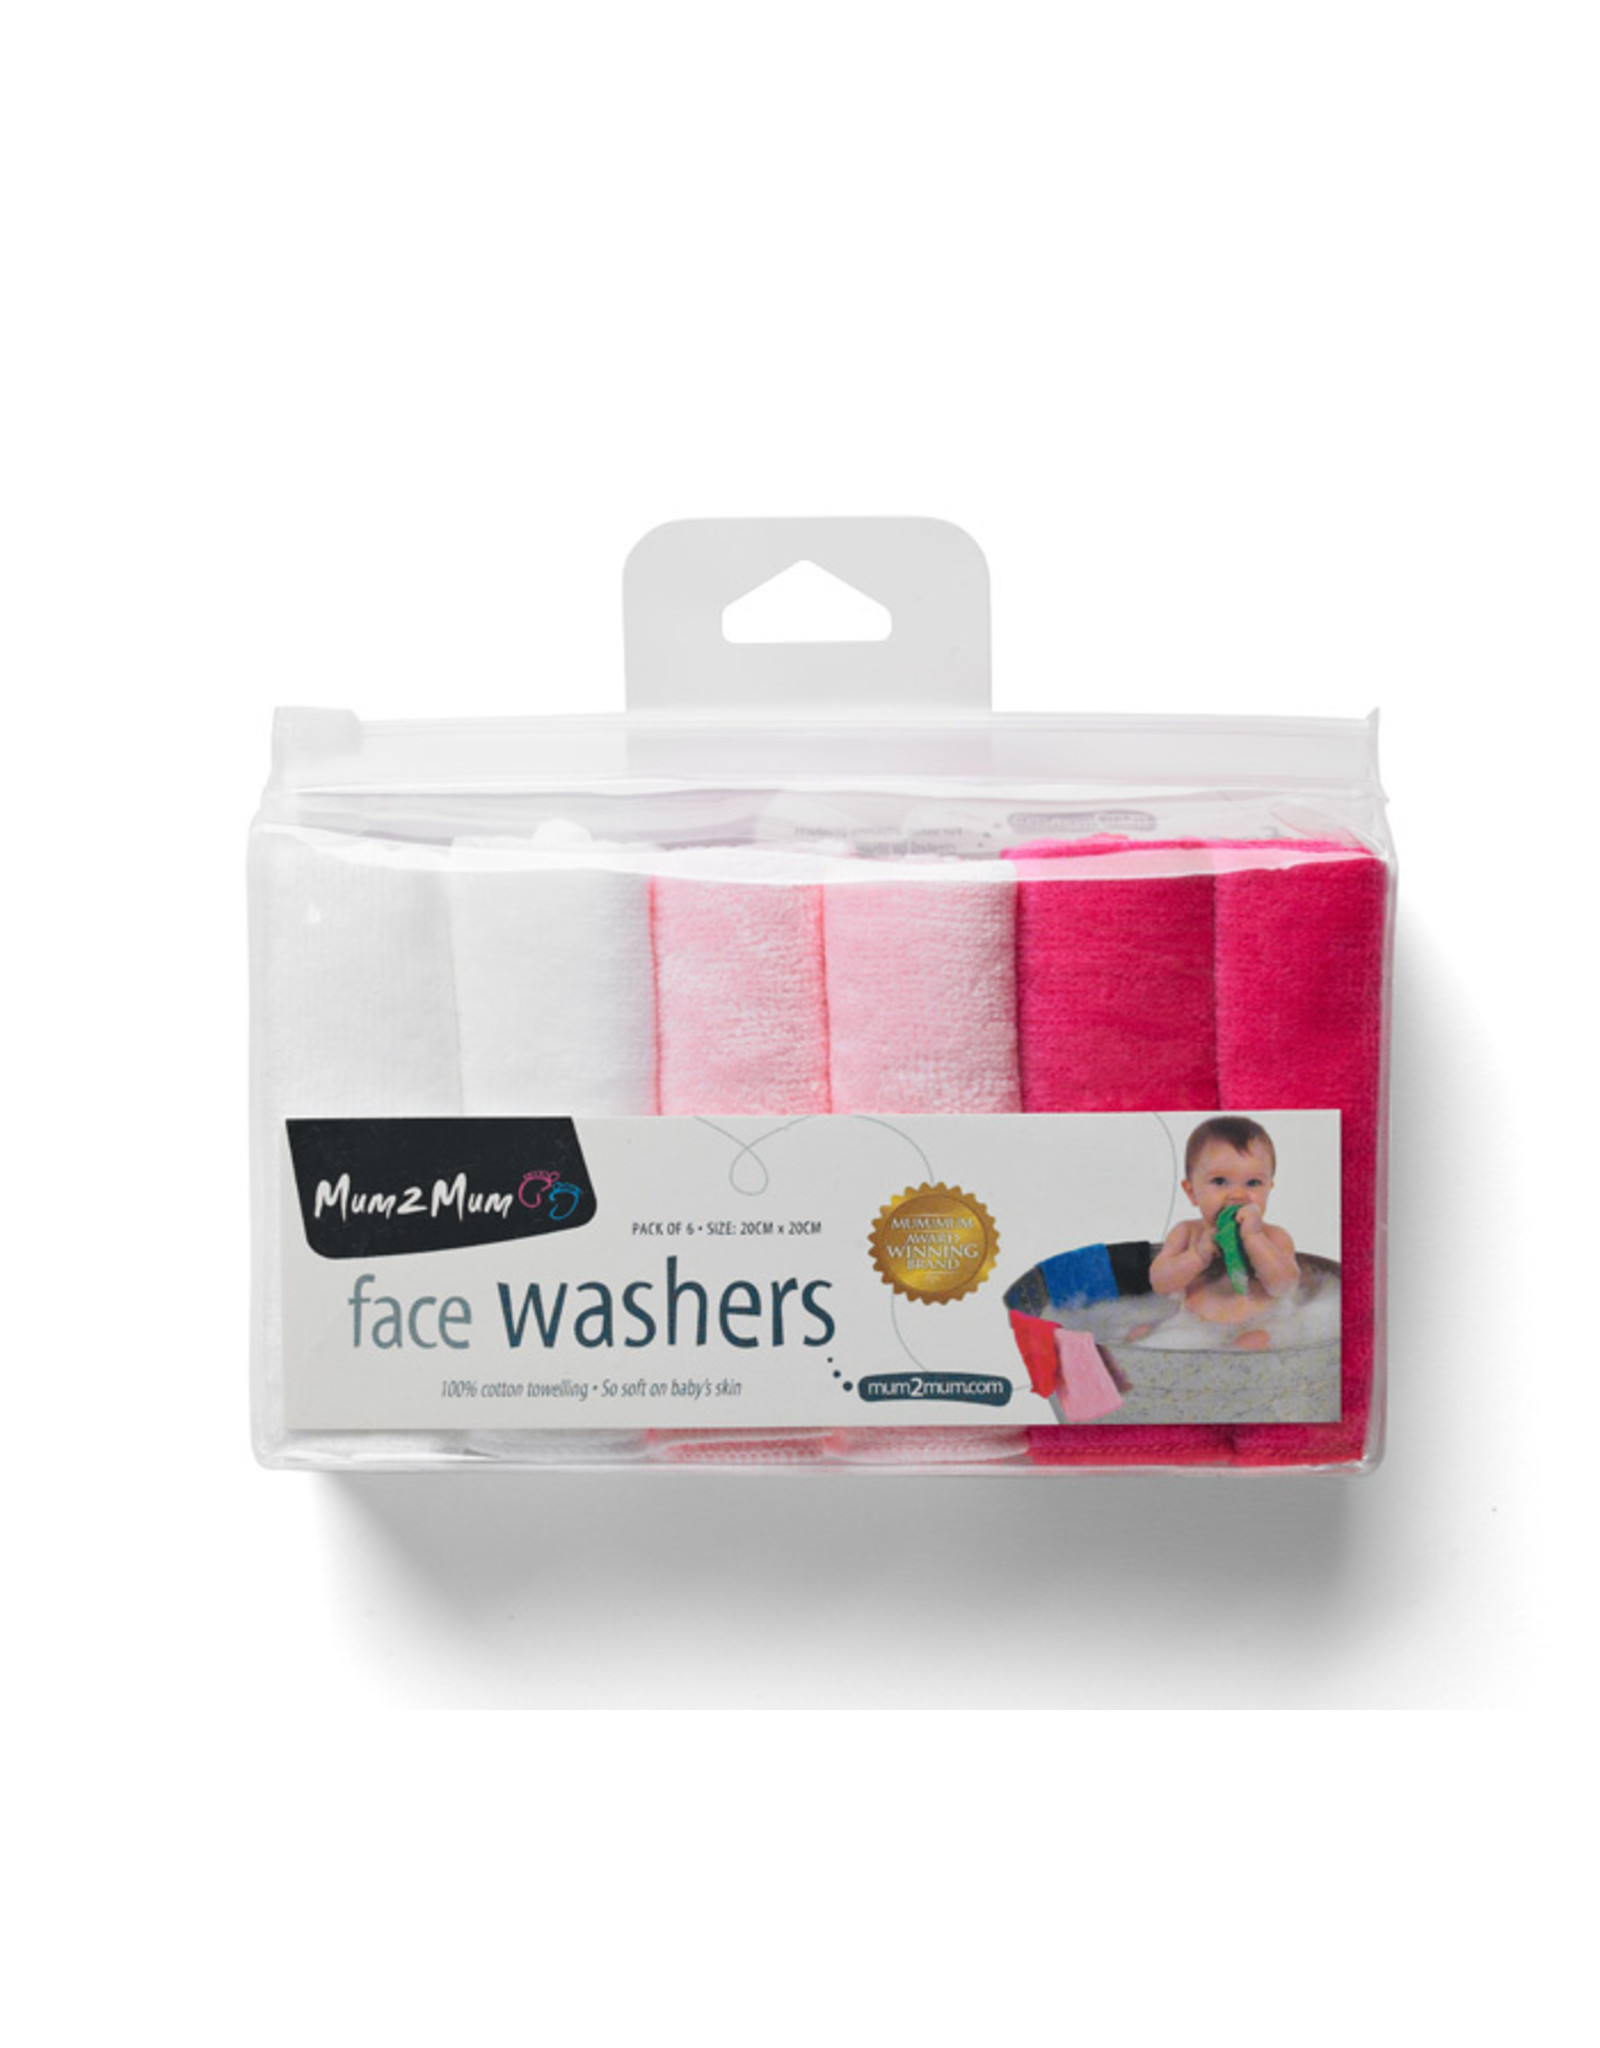 Mum2Mum Face Washers 6 pieces in a package